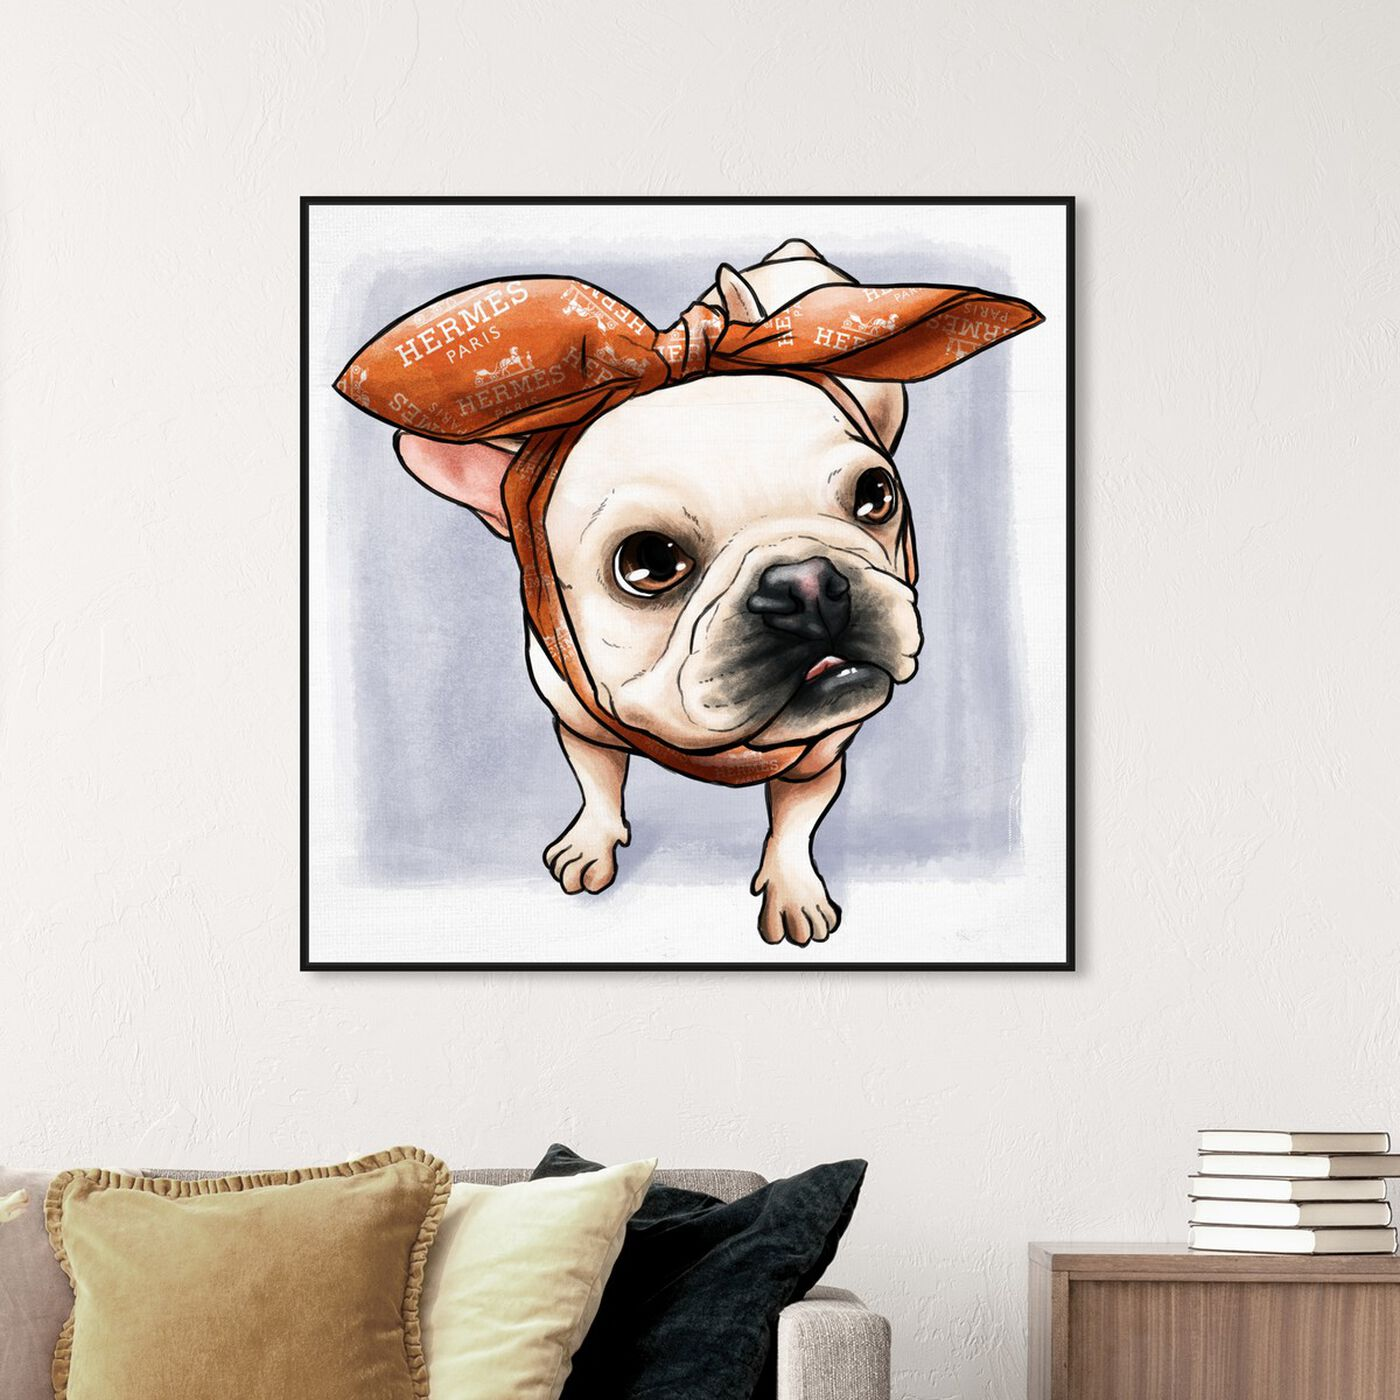 Hanging view of Headband Frenchie featuring fashion and glam and accessories art.